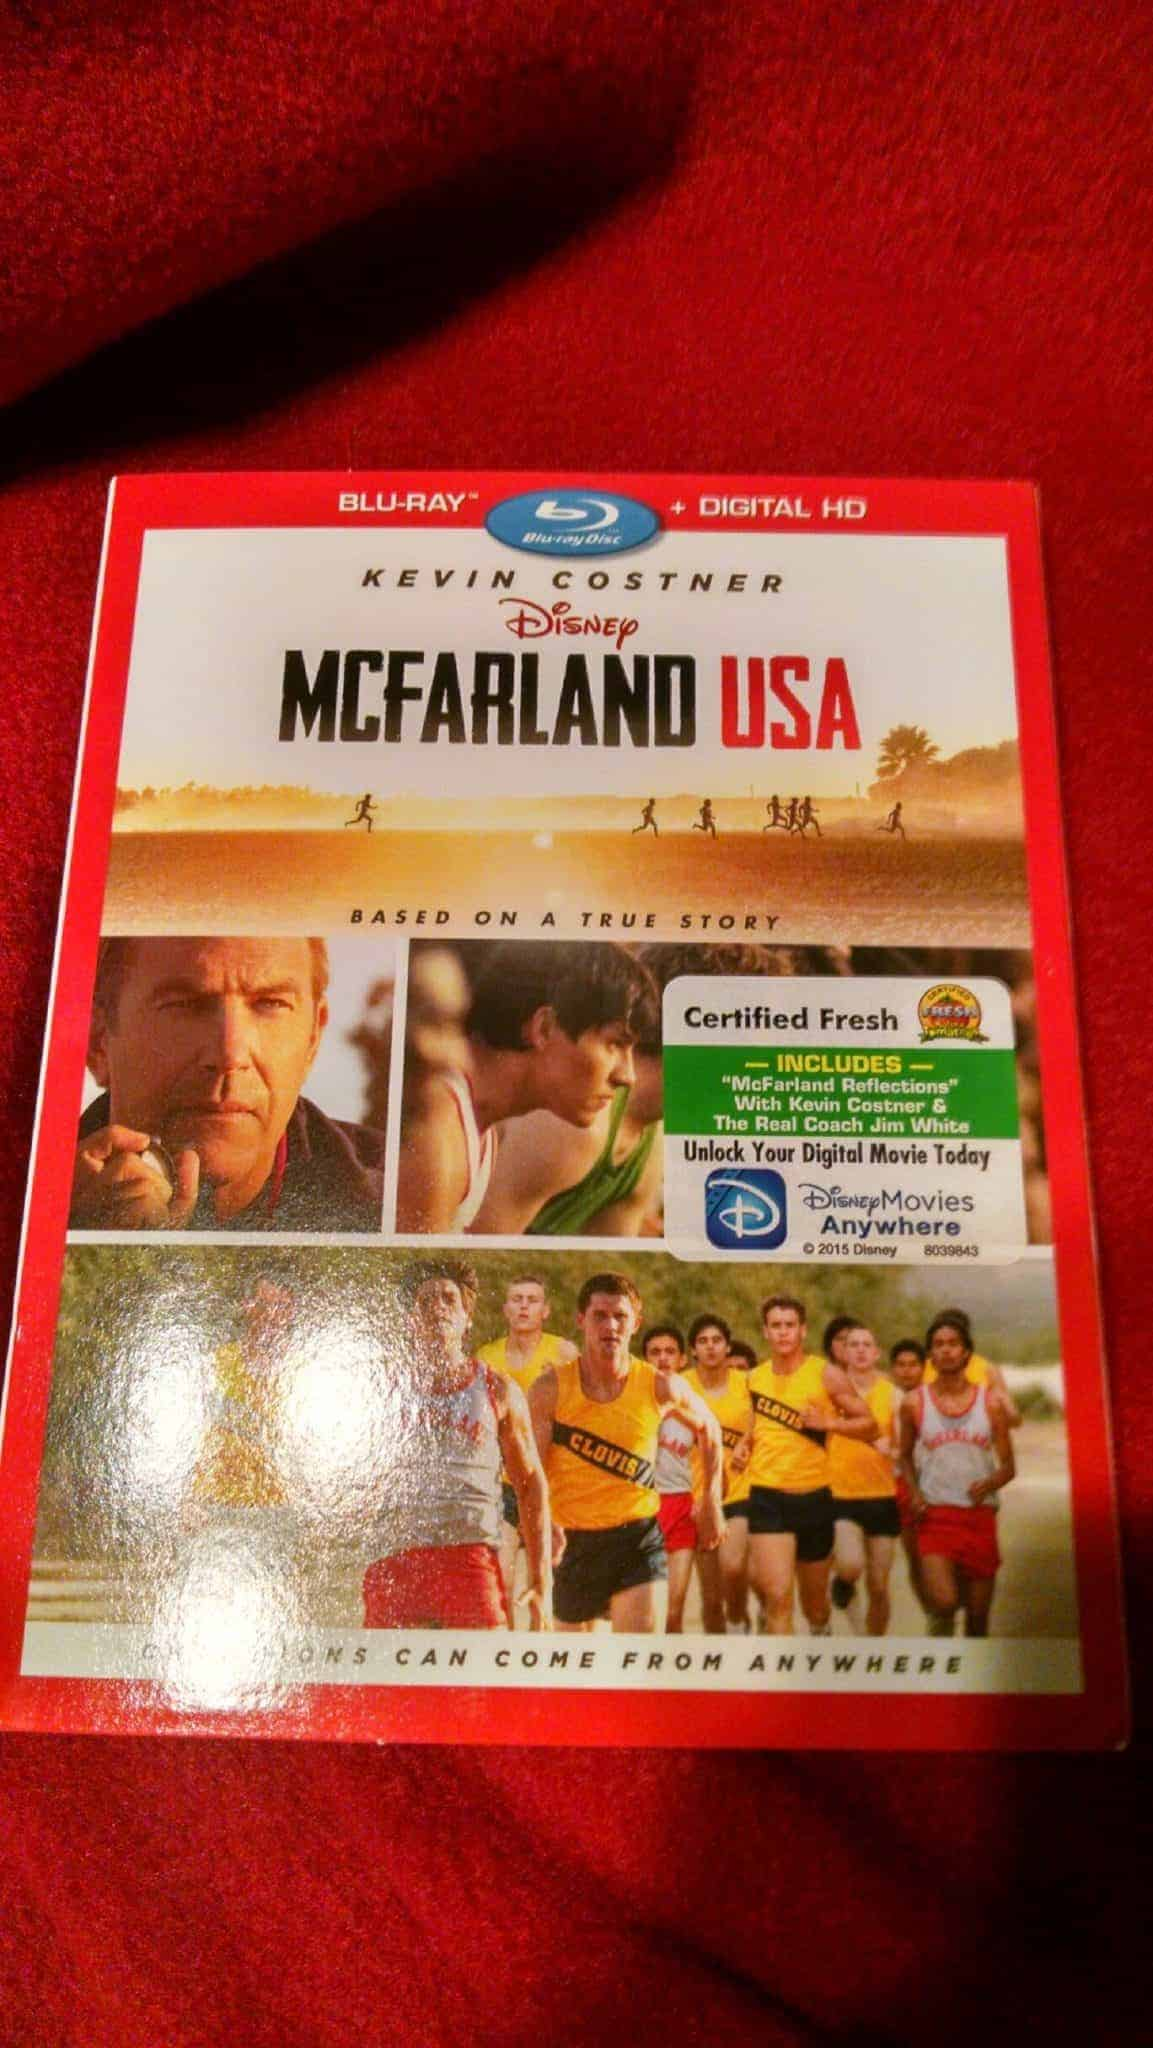 Tamale Recipe From McFarland USA